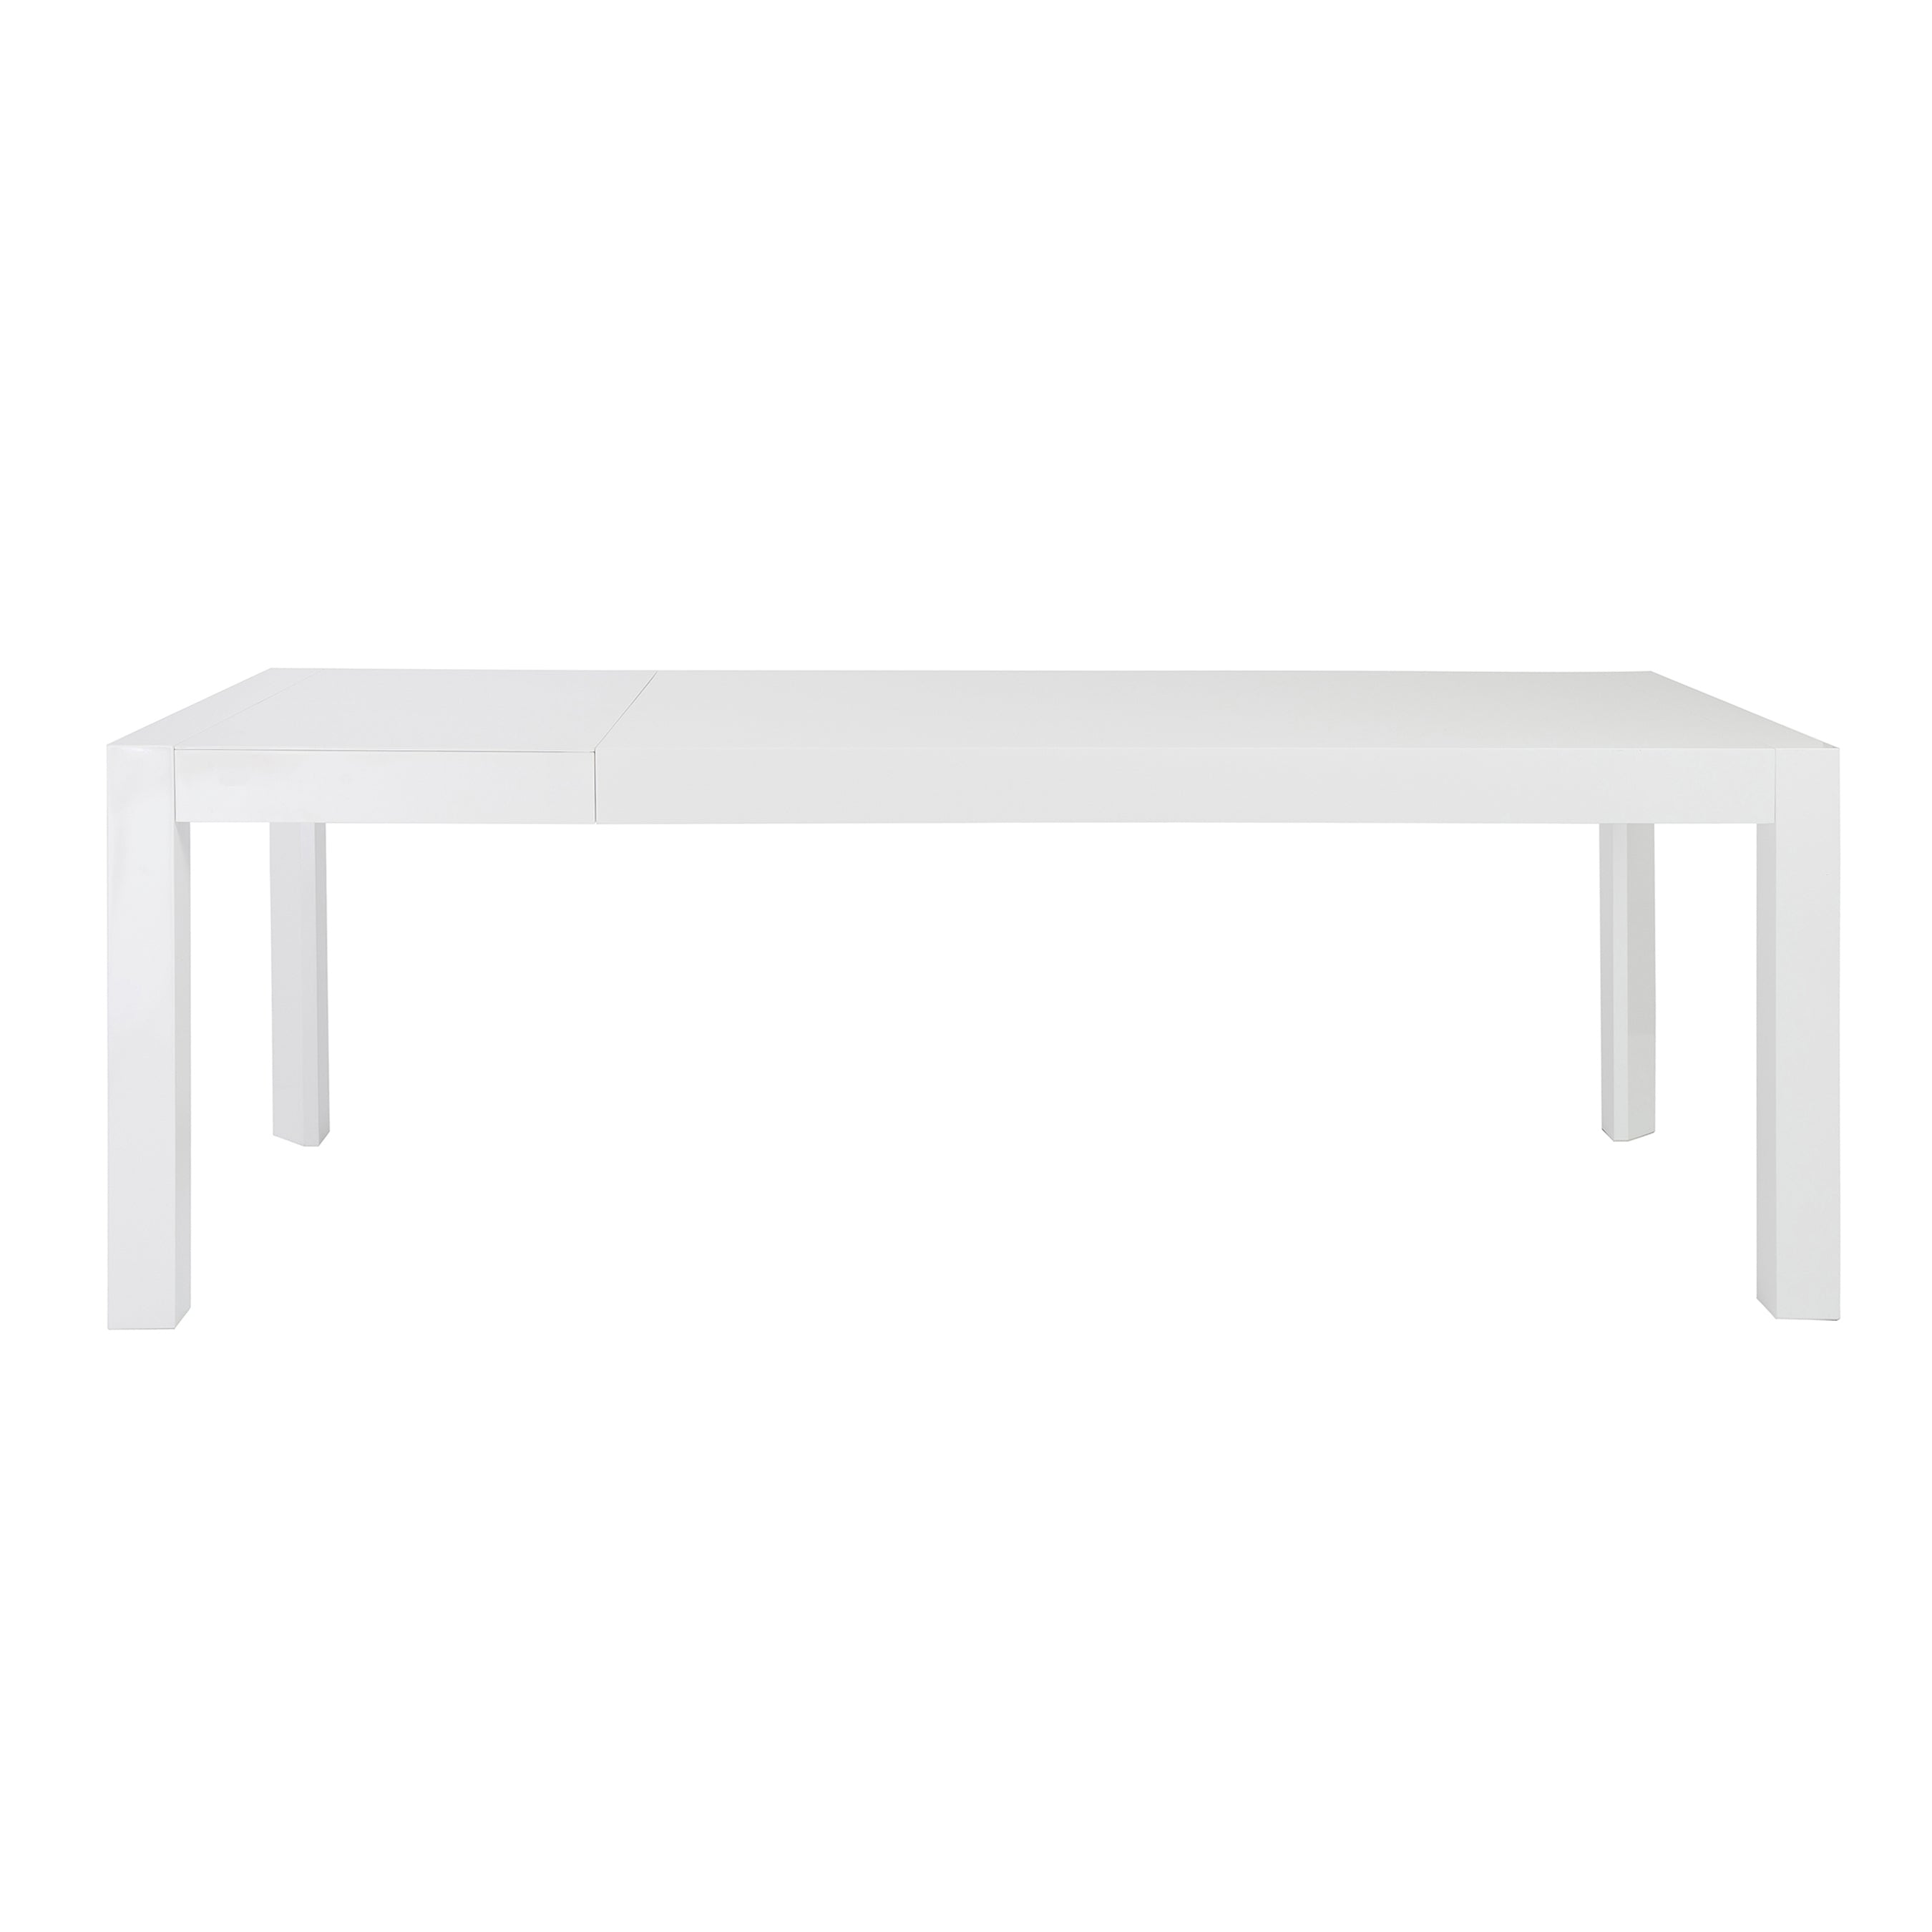 "63-83"" Glossy White Lacquer Desk or Conference Table with Butterfly Leaf Extension"